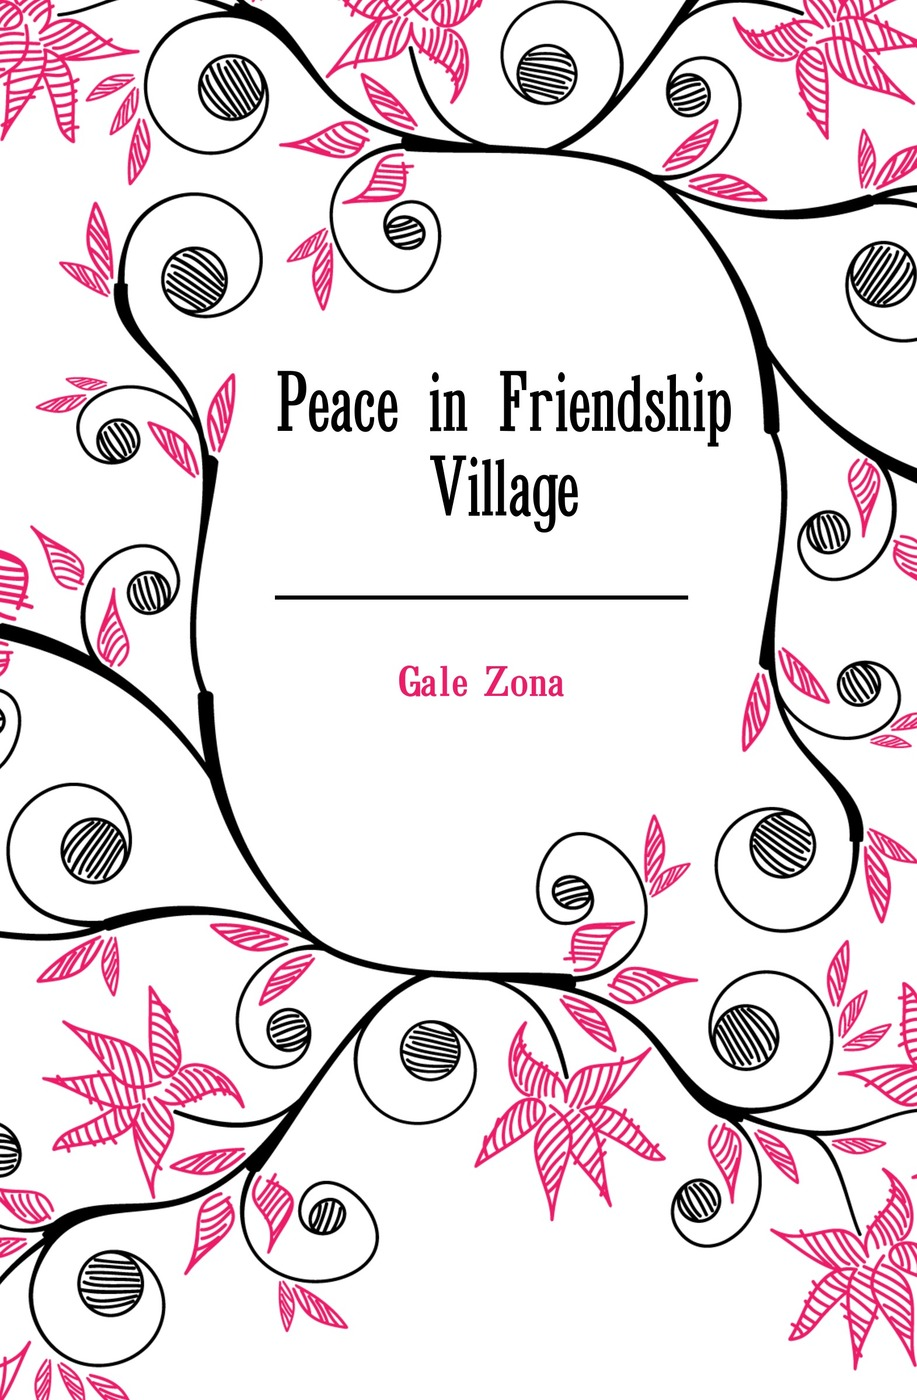 Gale Zona Peace in Friendship Village gale zona peace in friendship village